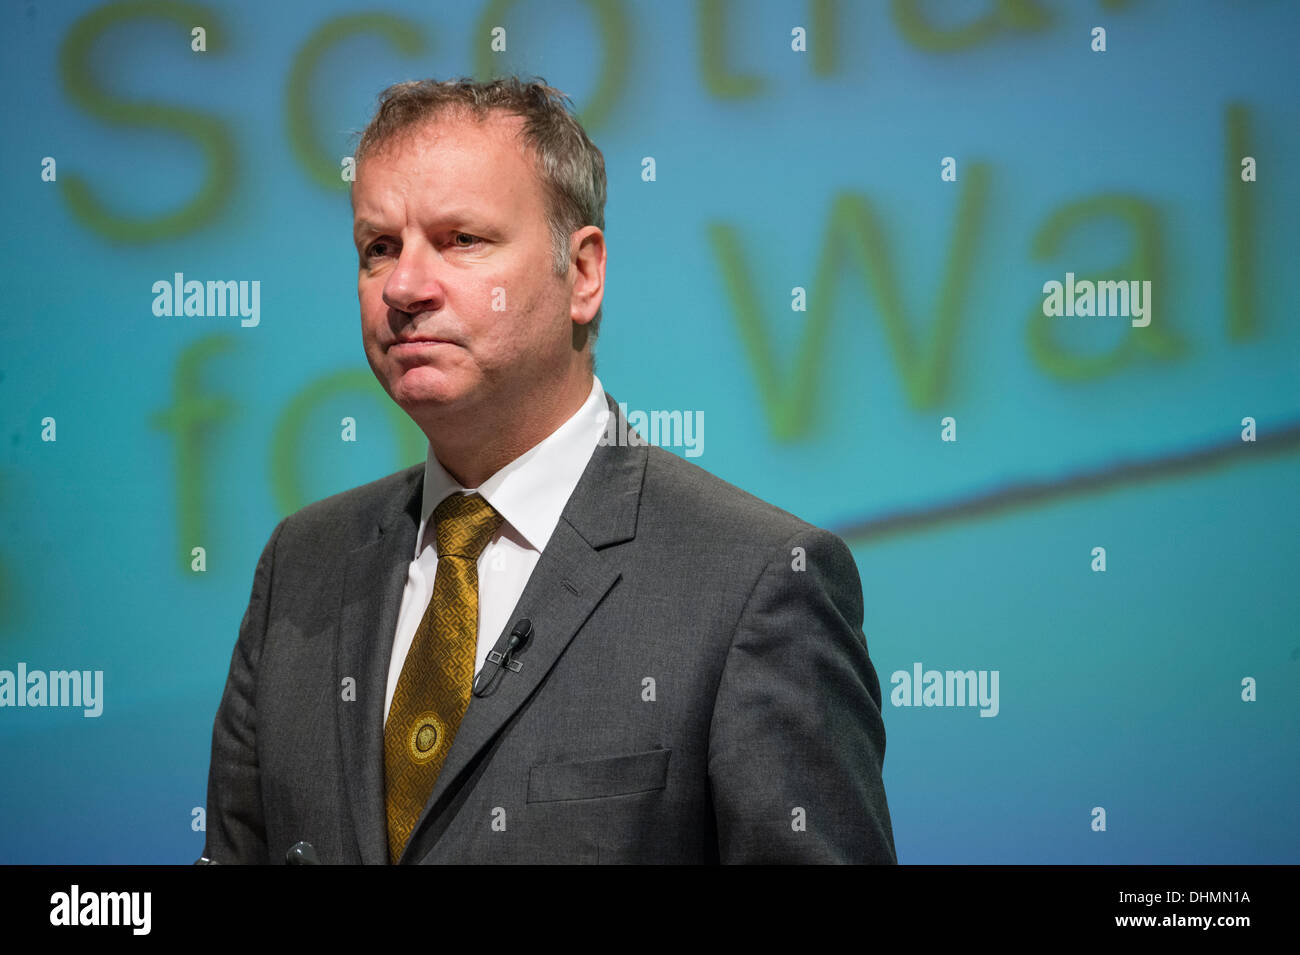 Pete Wishart SNP (Scottish Nationalist Party) MP speaking at Plaid Cymru annual party conference Aberystwyth UK Stock Photo